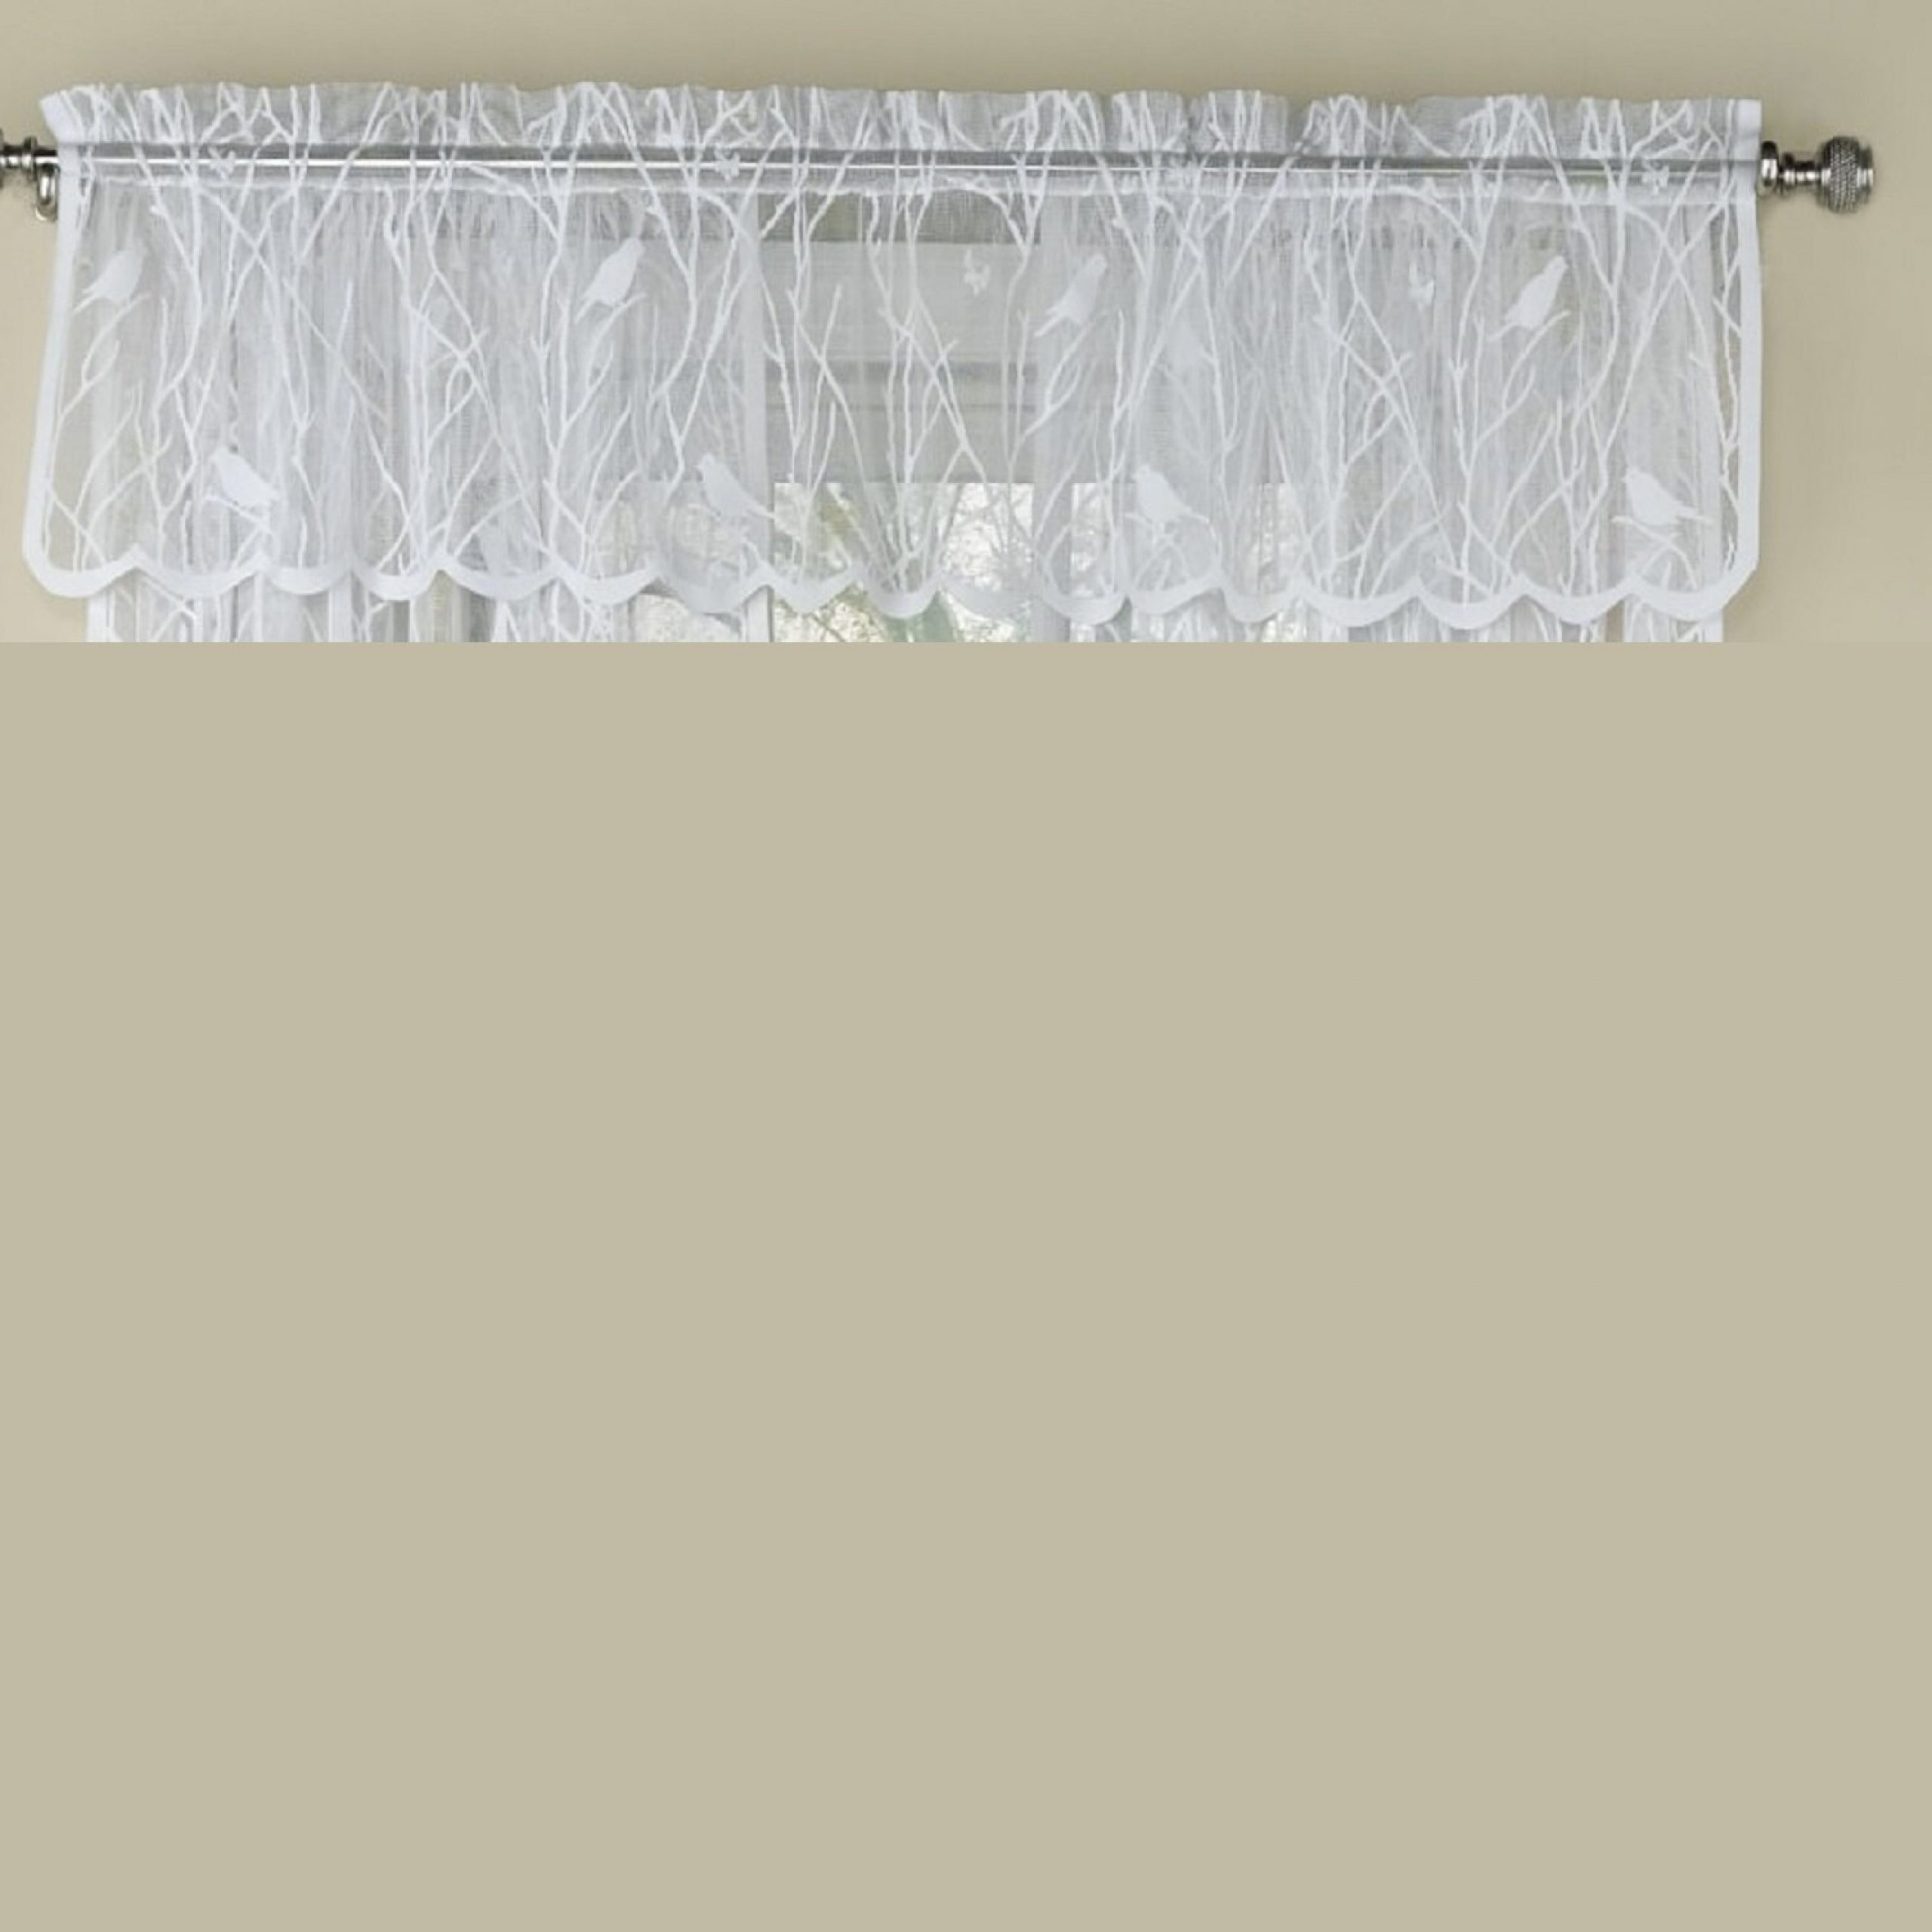 """Prevatte Bird Song Sheer Lace Tailored 56"""" Window Valance Regarding Ivory Knit Lace Bird Motif Window Curtain (View 15 of 20)"""